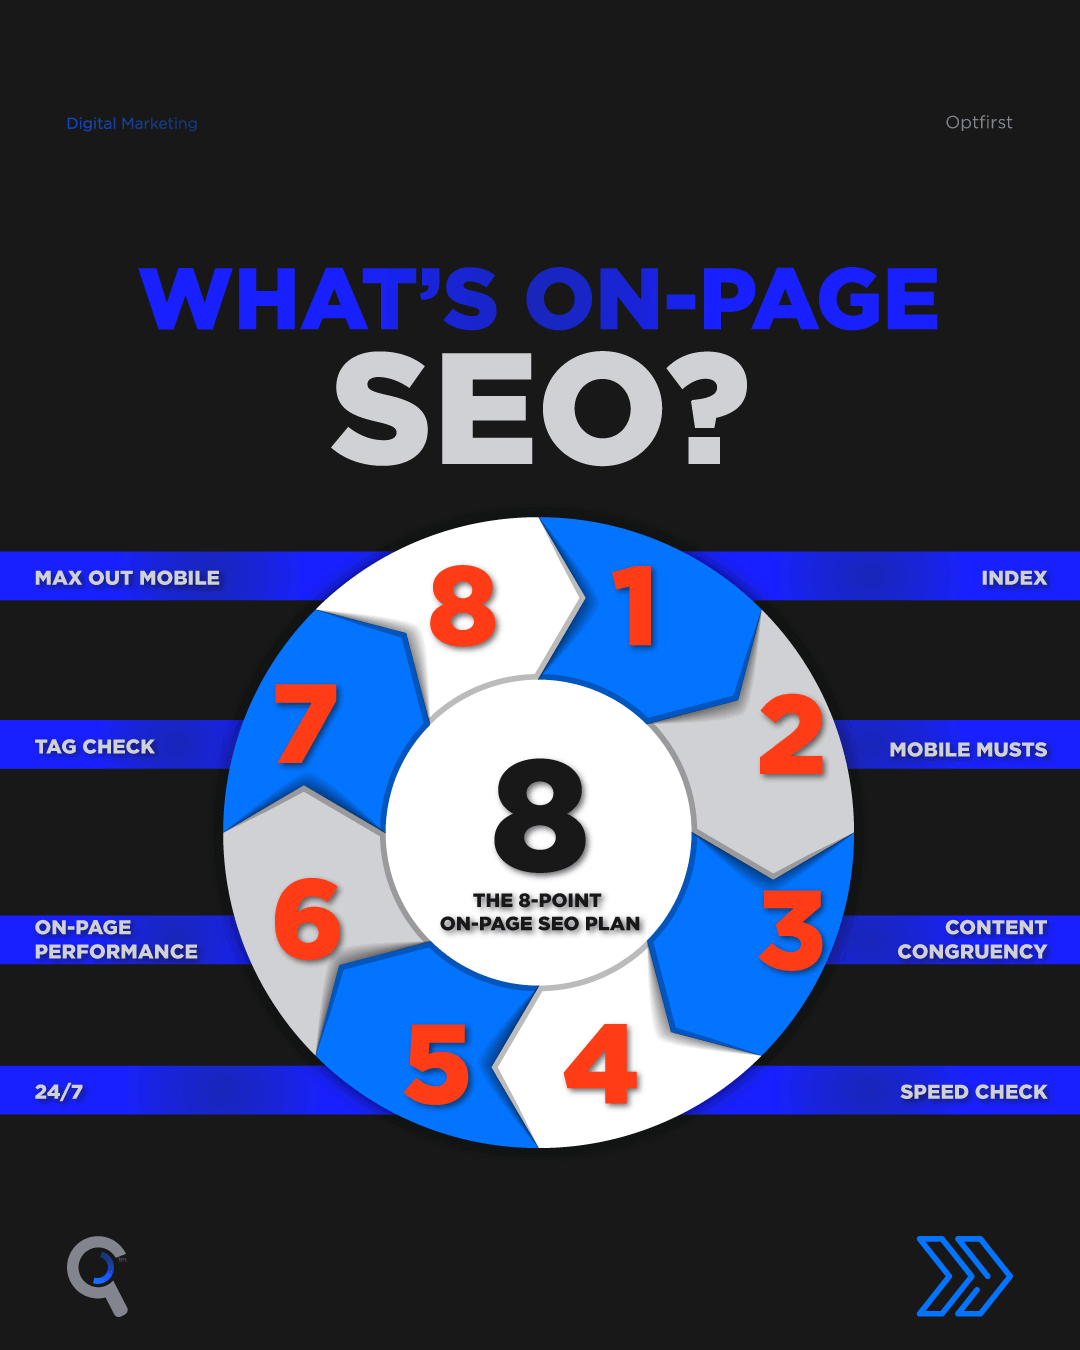 What's On-Page SEO?